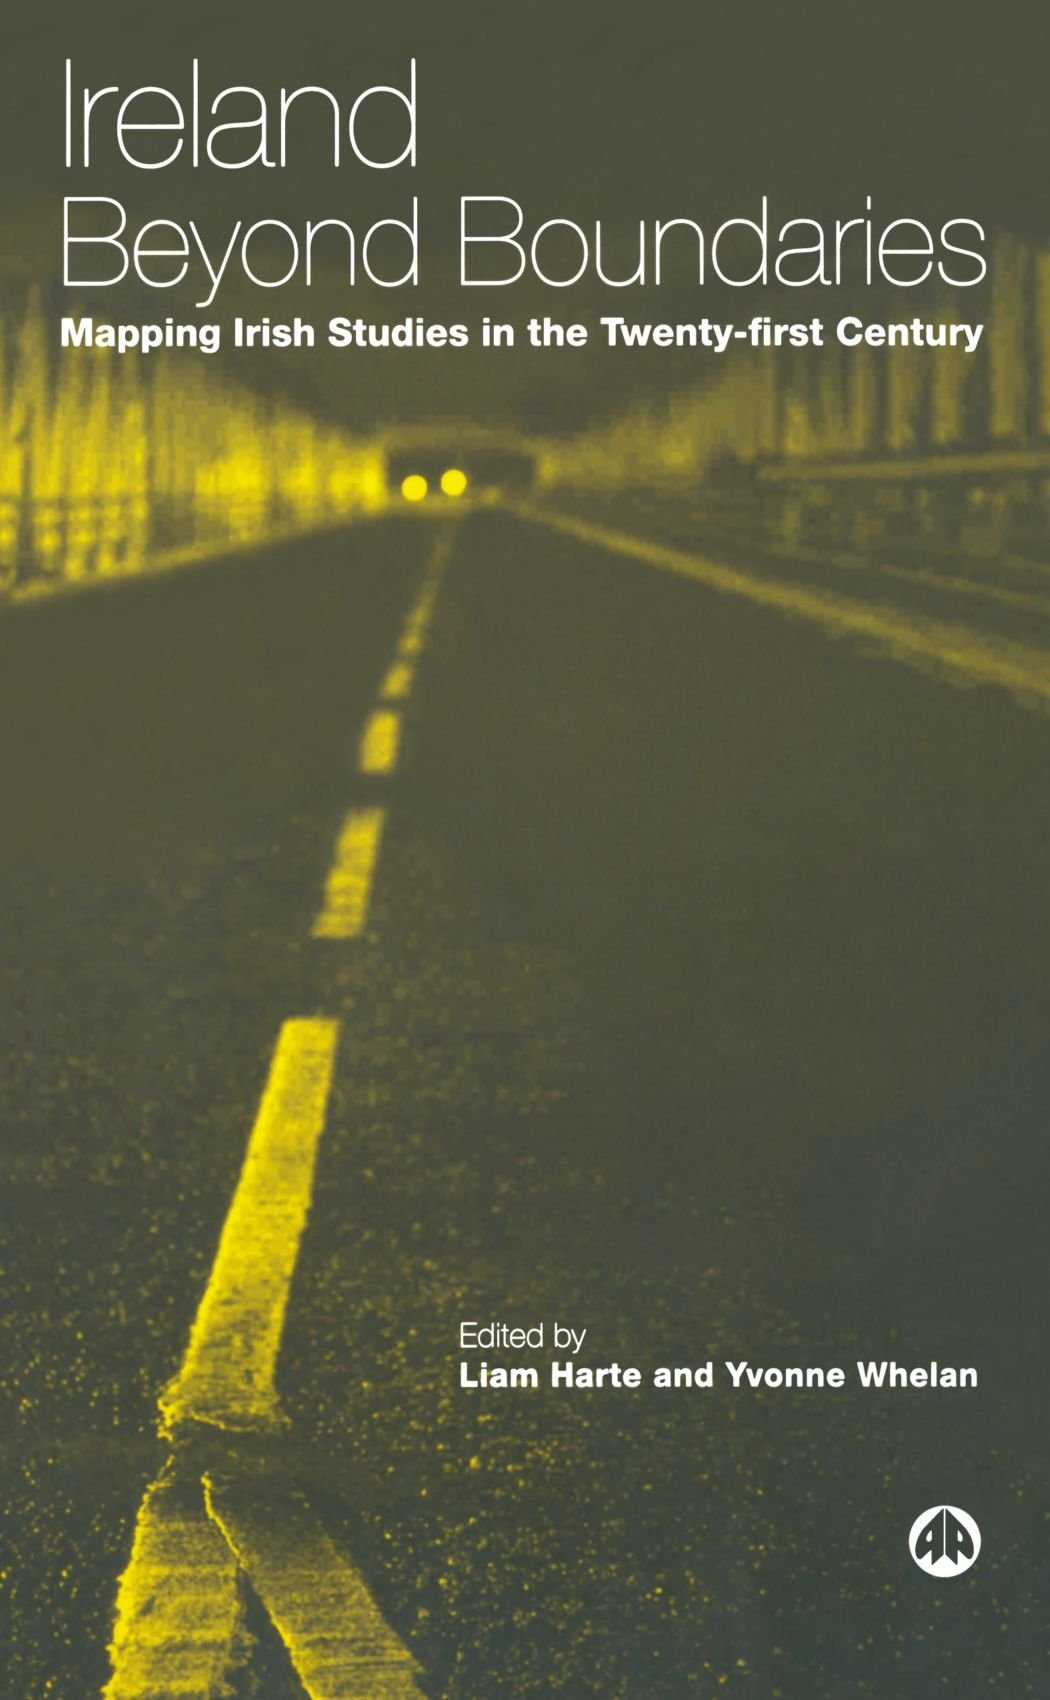 Download Ireland Beyond Boundaries: Mapping Irish Studies in the Twenty-First Century (Contemporary Irish Studies) pdf